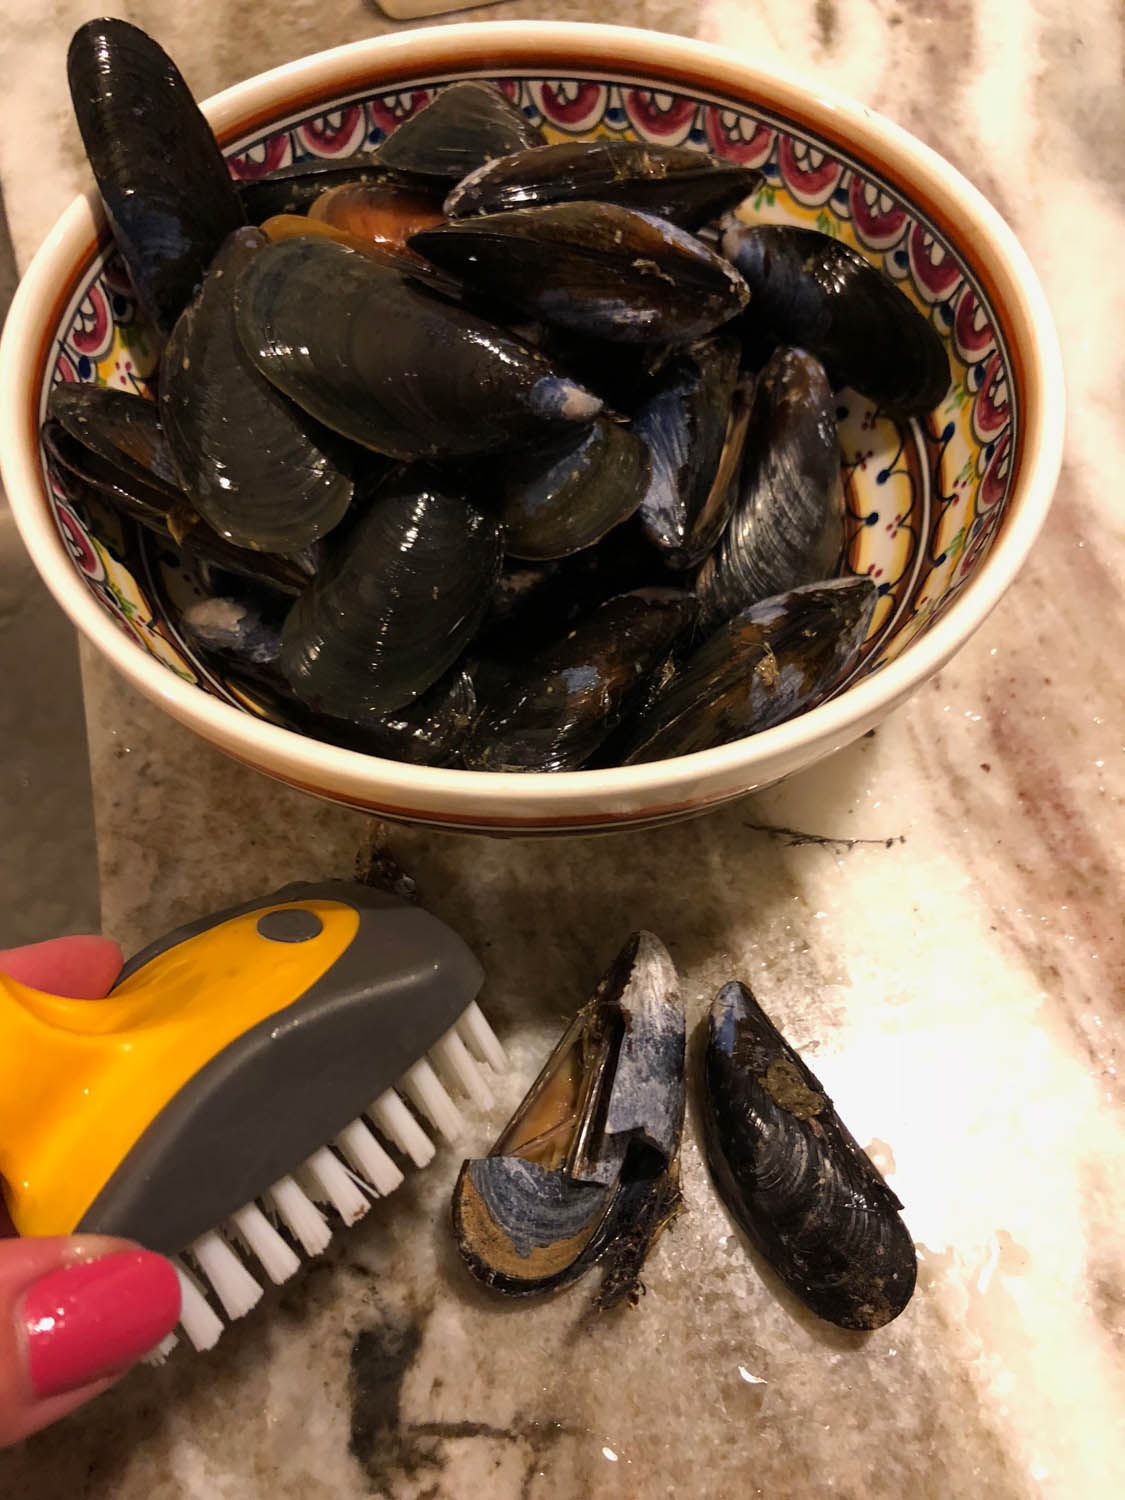 cleaning mussels and removing cracked broken ones